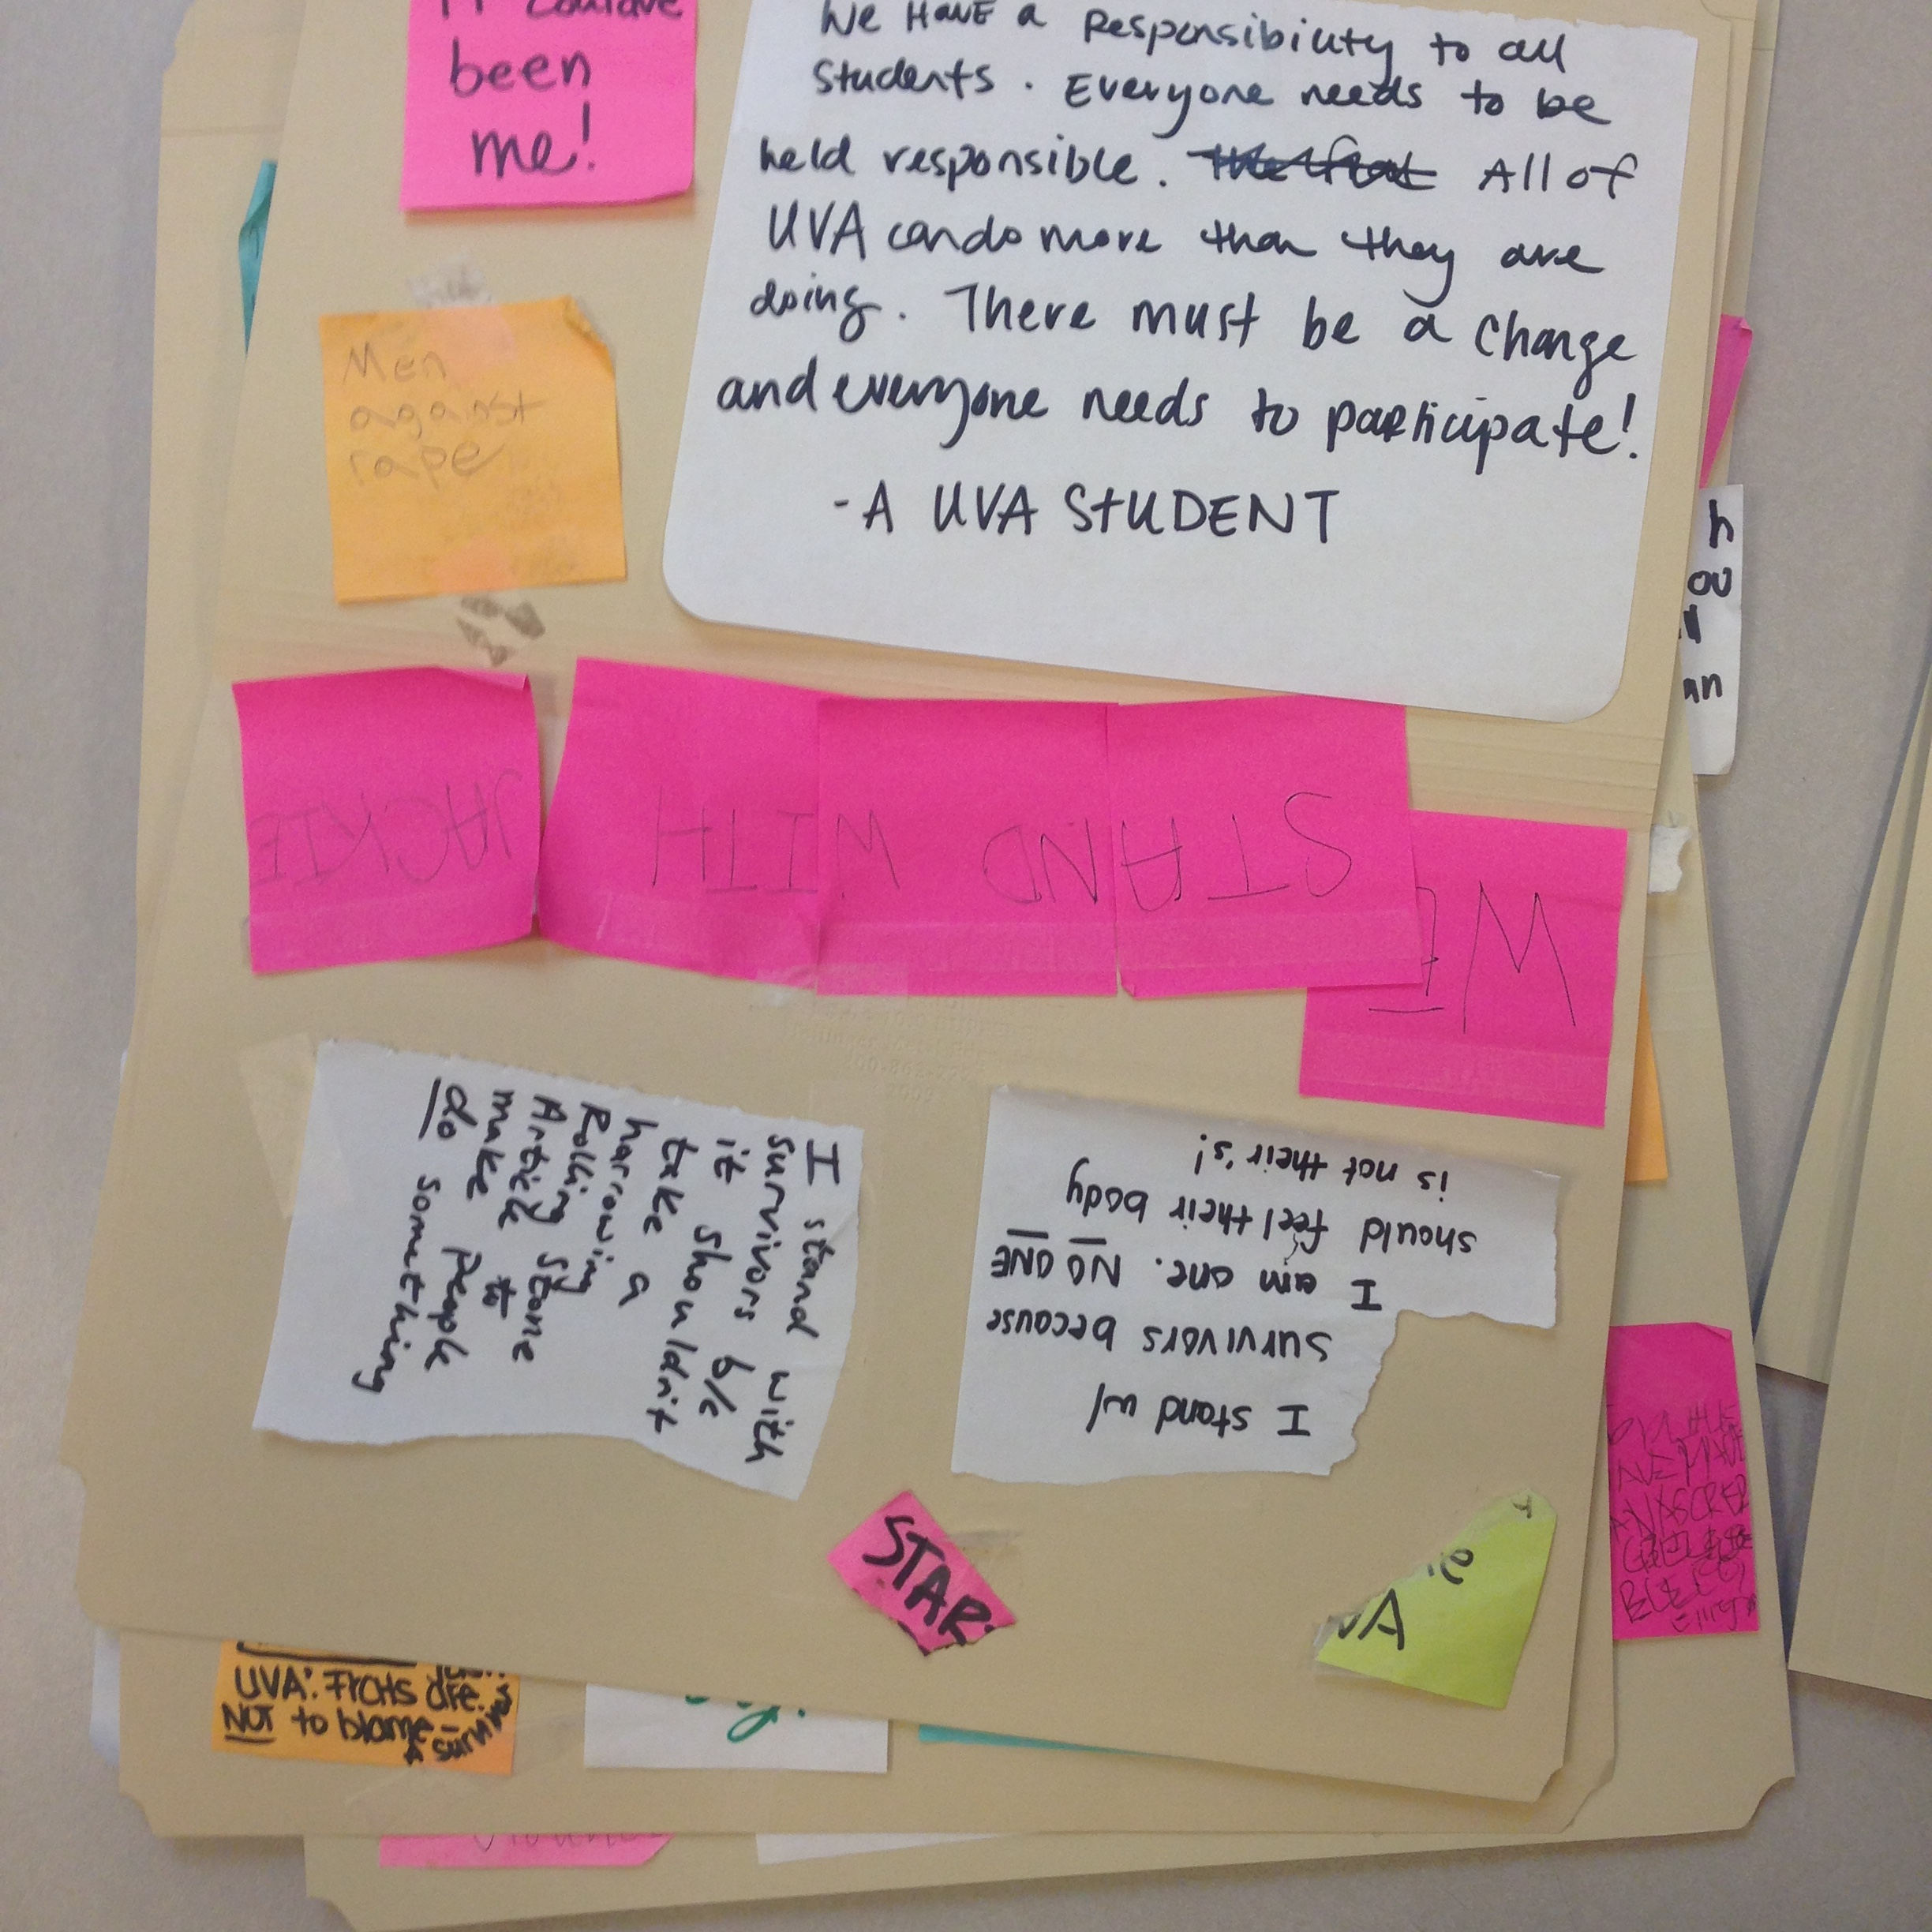 Notes from Peabody Hall door, temporarily housed on archival folders, 10 December 2014. (Photograph by Edward Gaynor)